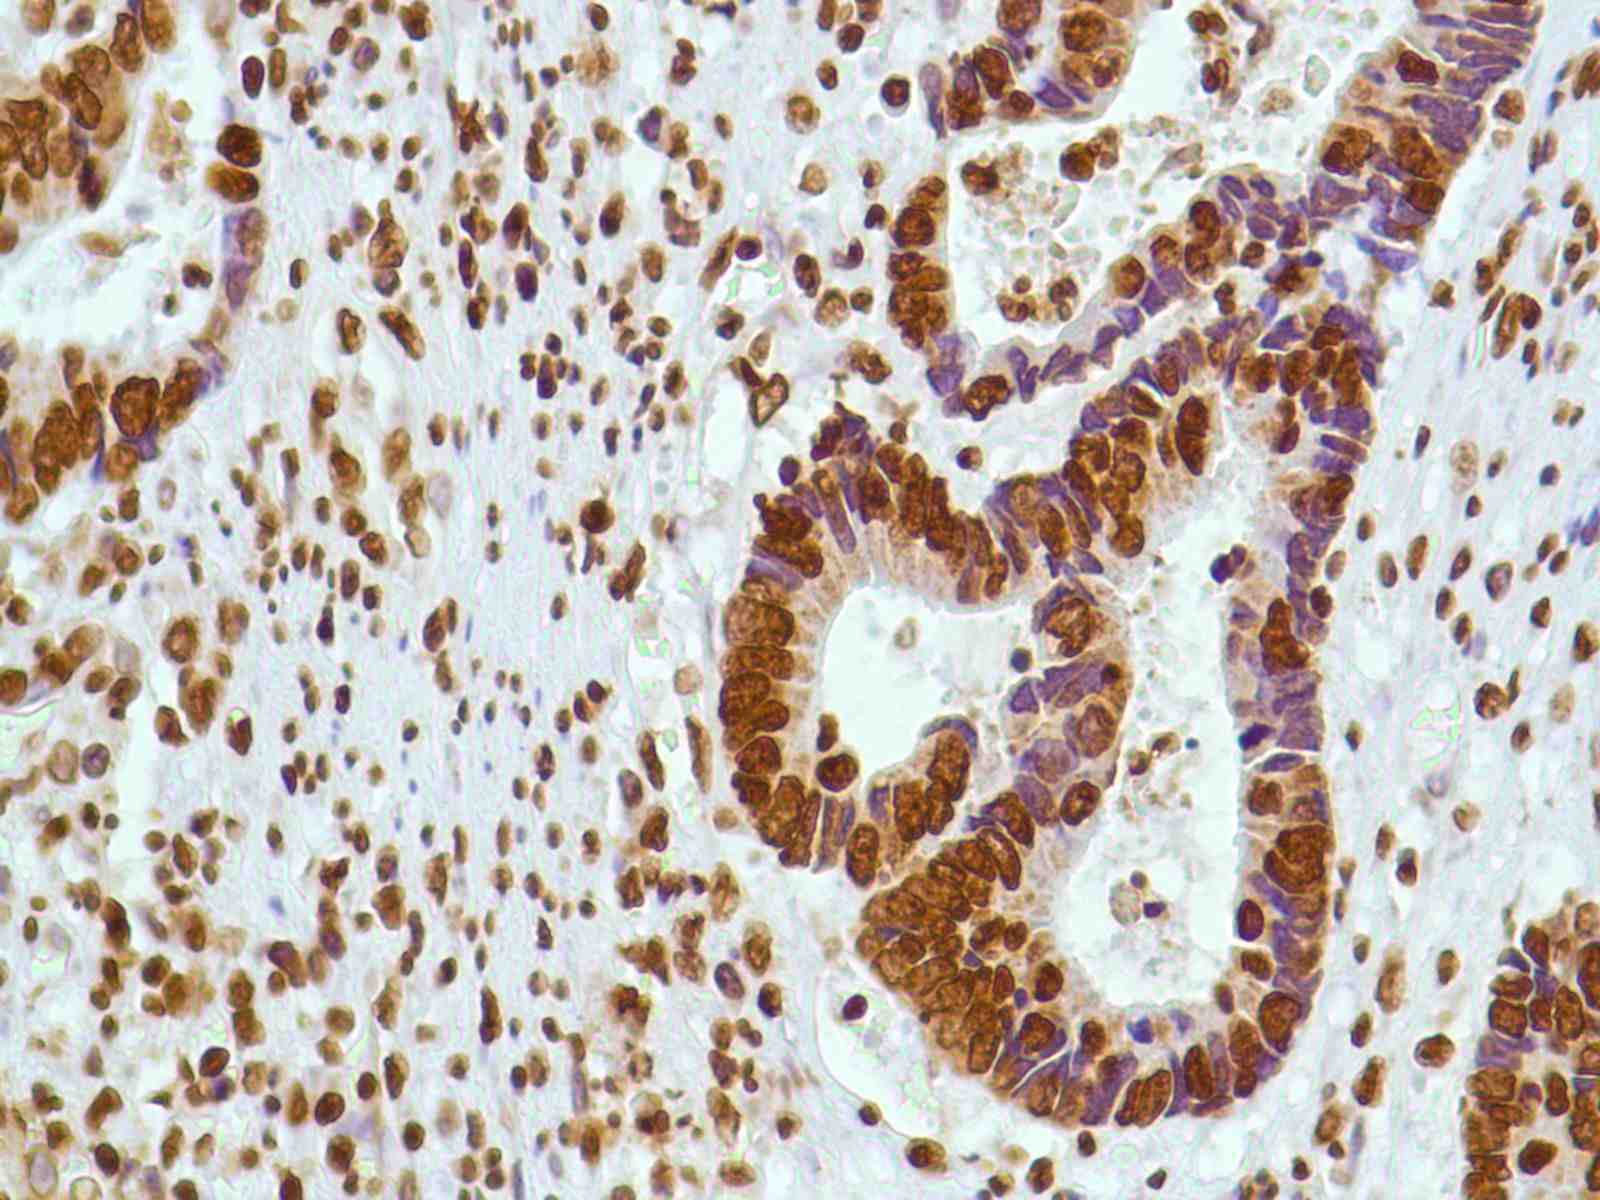 Human Colon Adenocarcinoma stained with anti-ERCC1 antibody